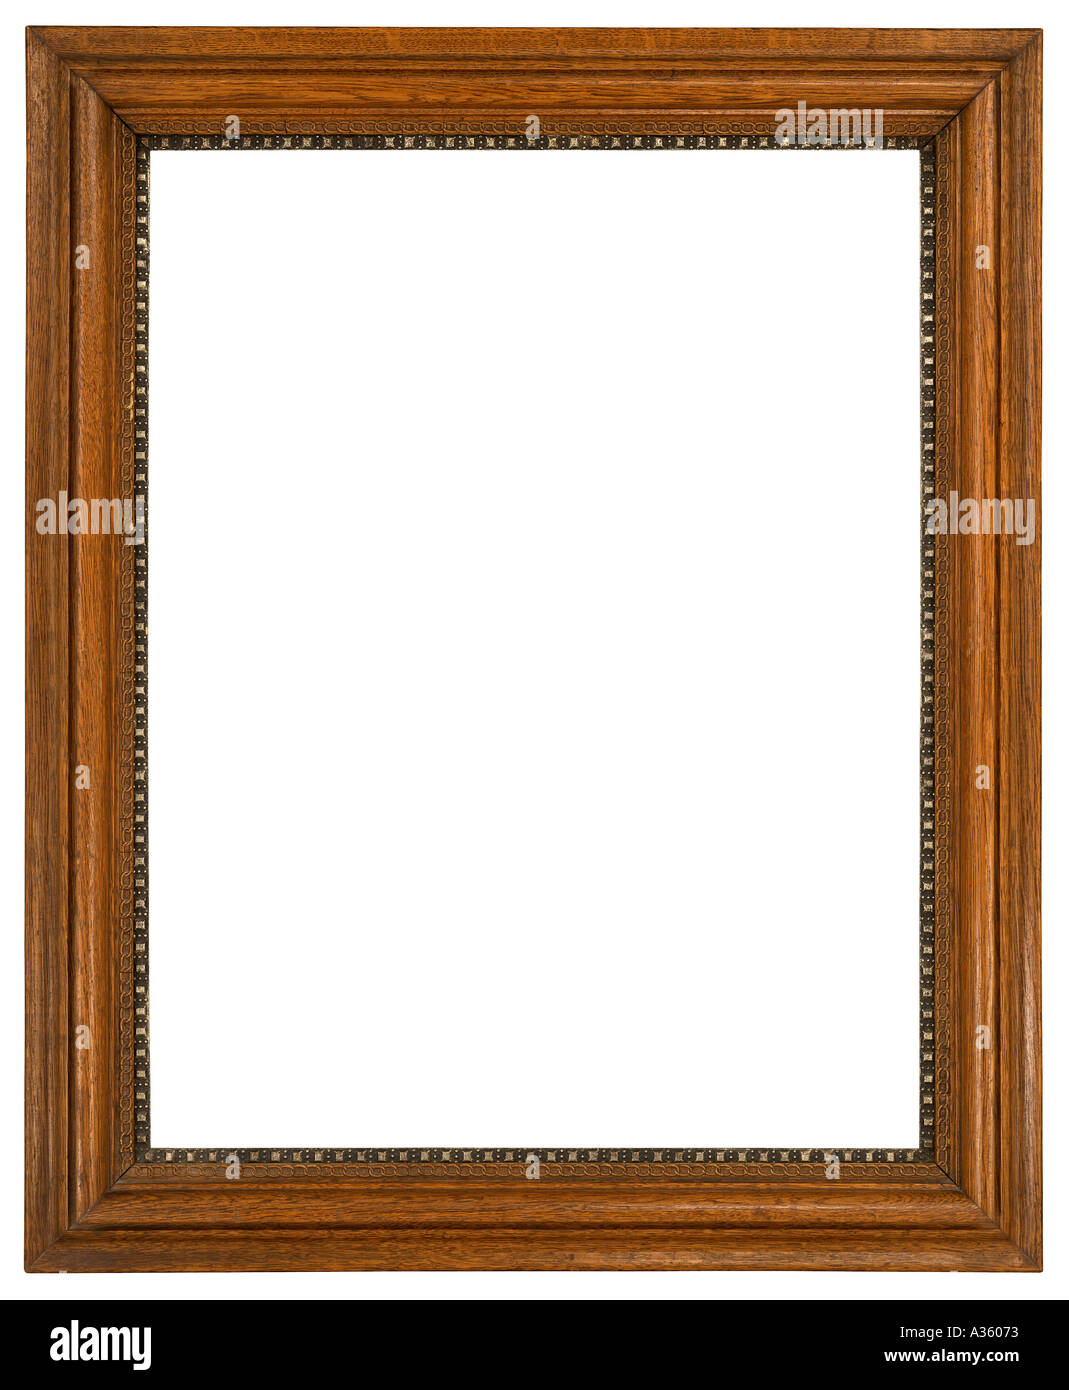 A Vertical Rectangular Decorative Wooden Frame With An Ornate Beaded